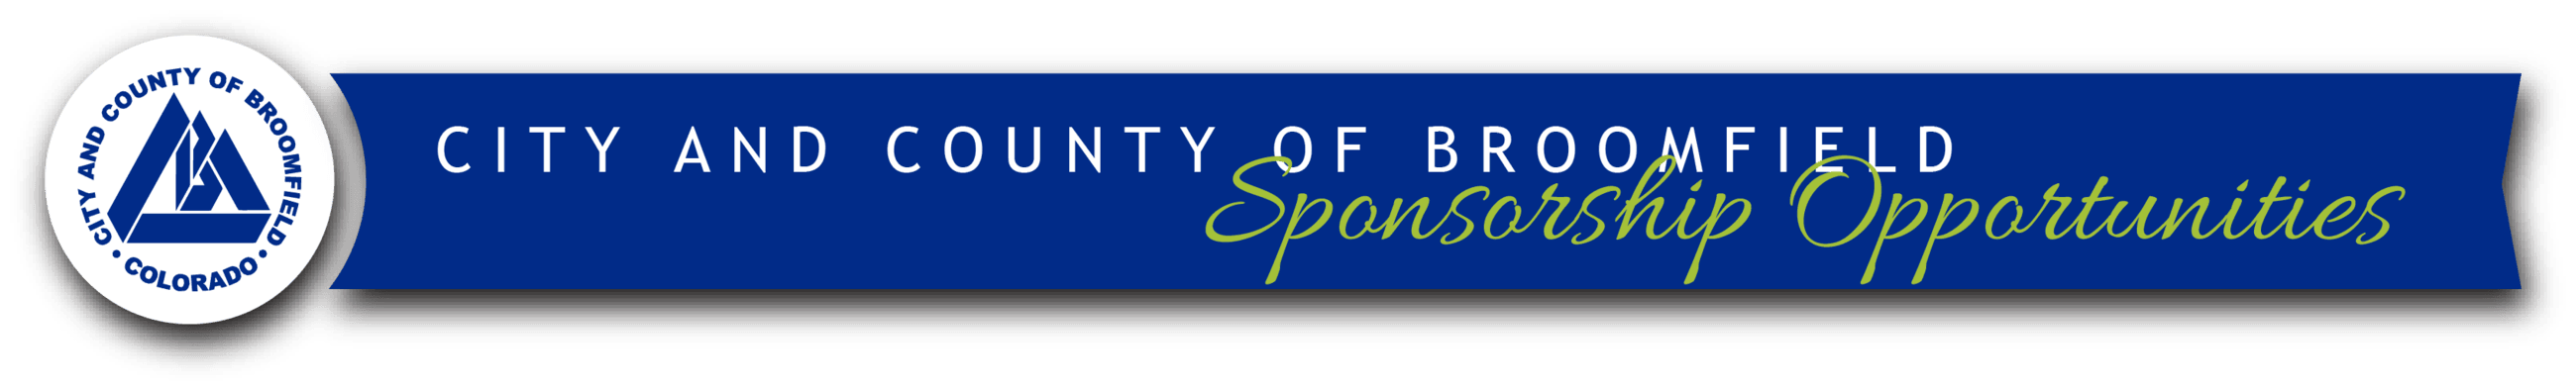 City and County of Broomfield Sponsorships